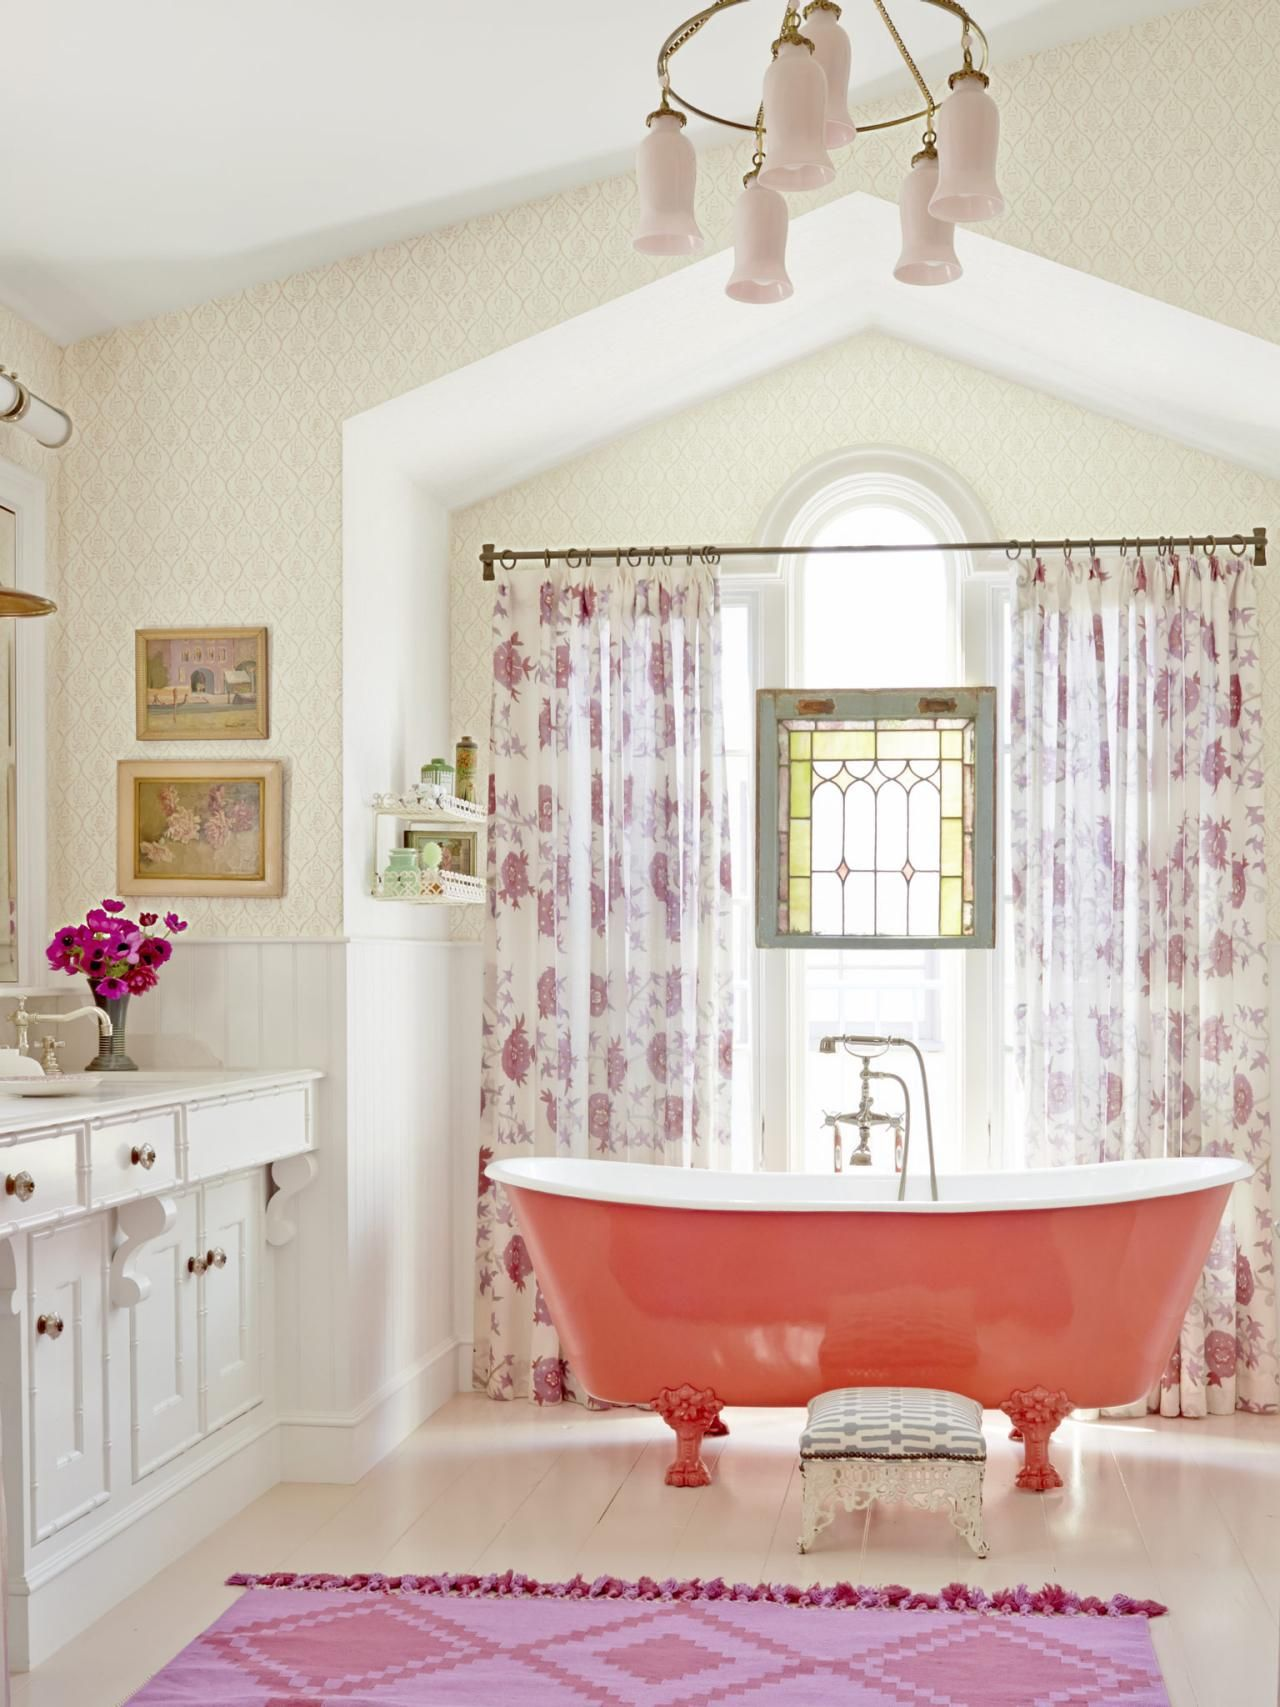 Eclectic and Colorful Decorating Ideas | HGTV